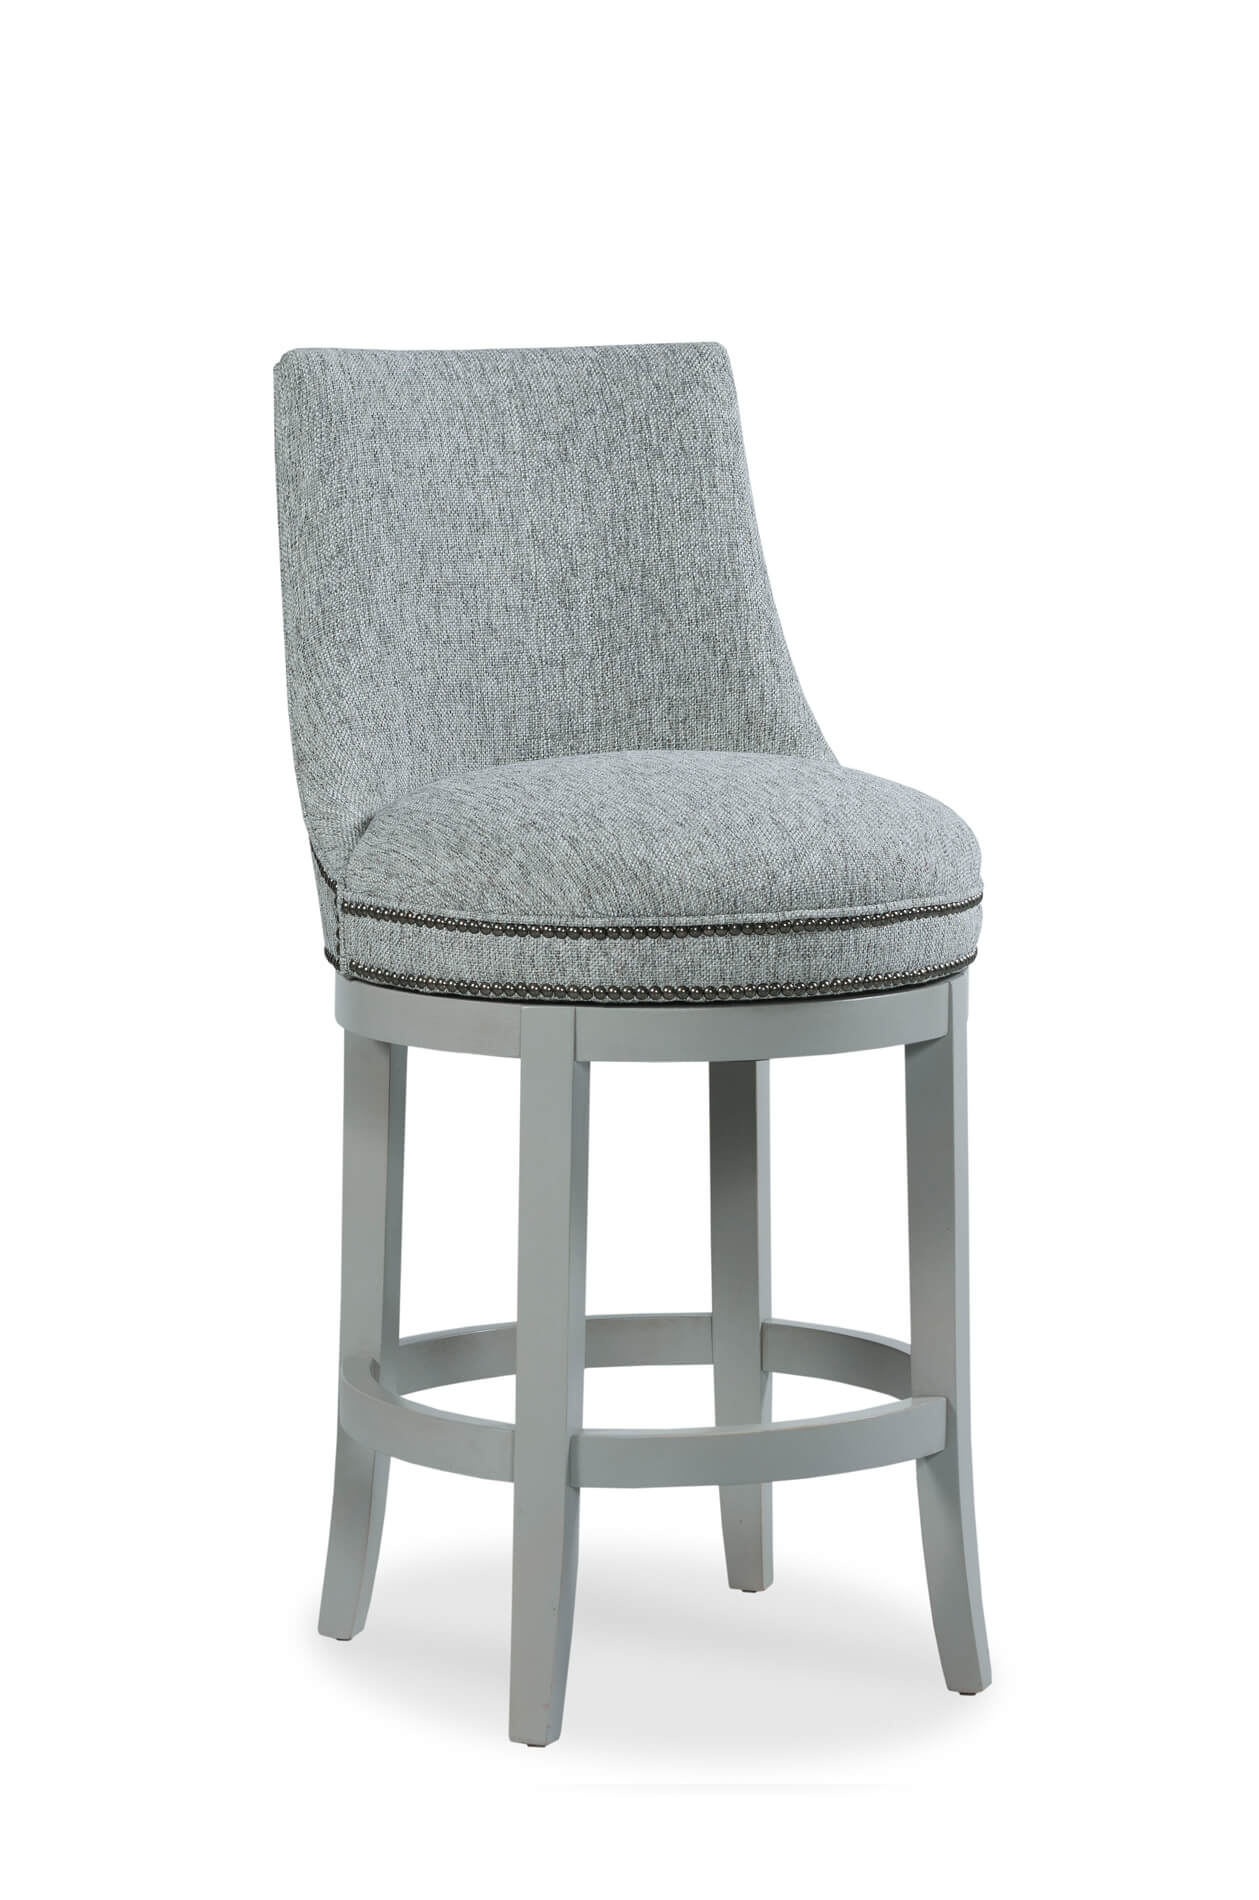 Buy Vesper Upholstered Wooden Swivel Stool W Tall Back